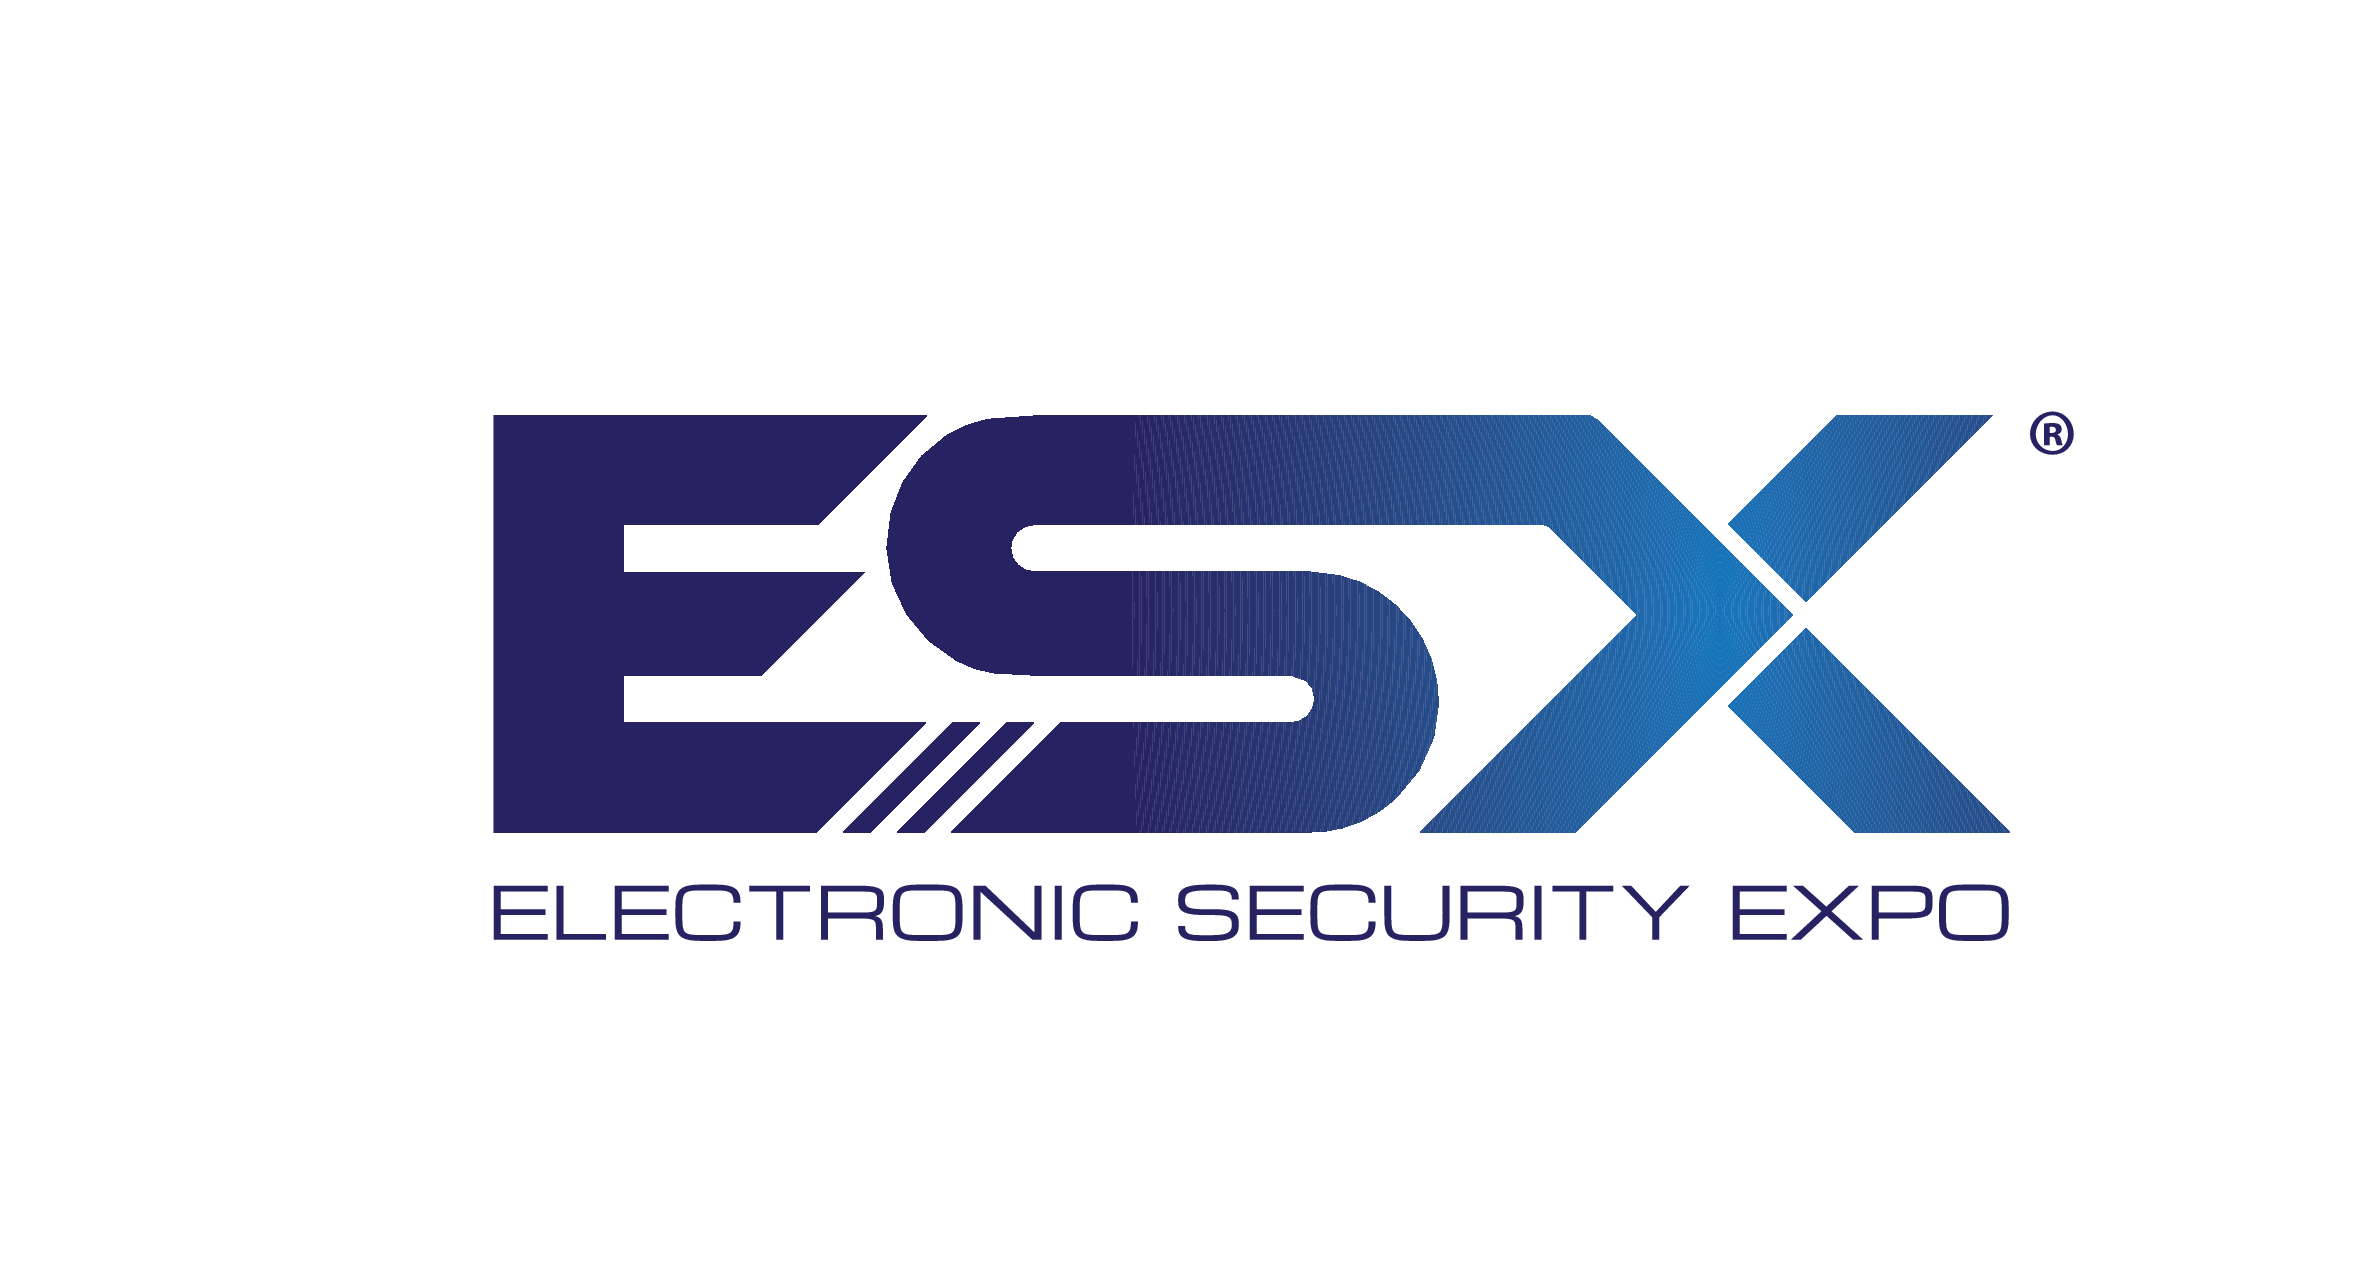 ESX Electronic security expo